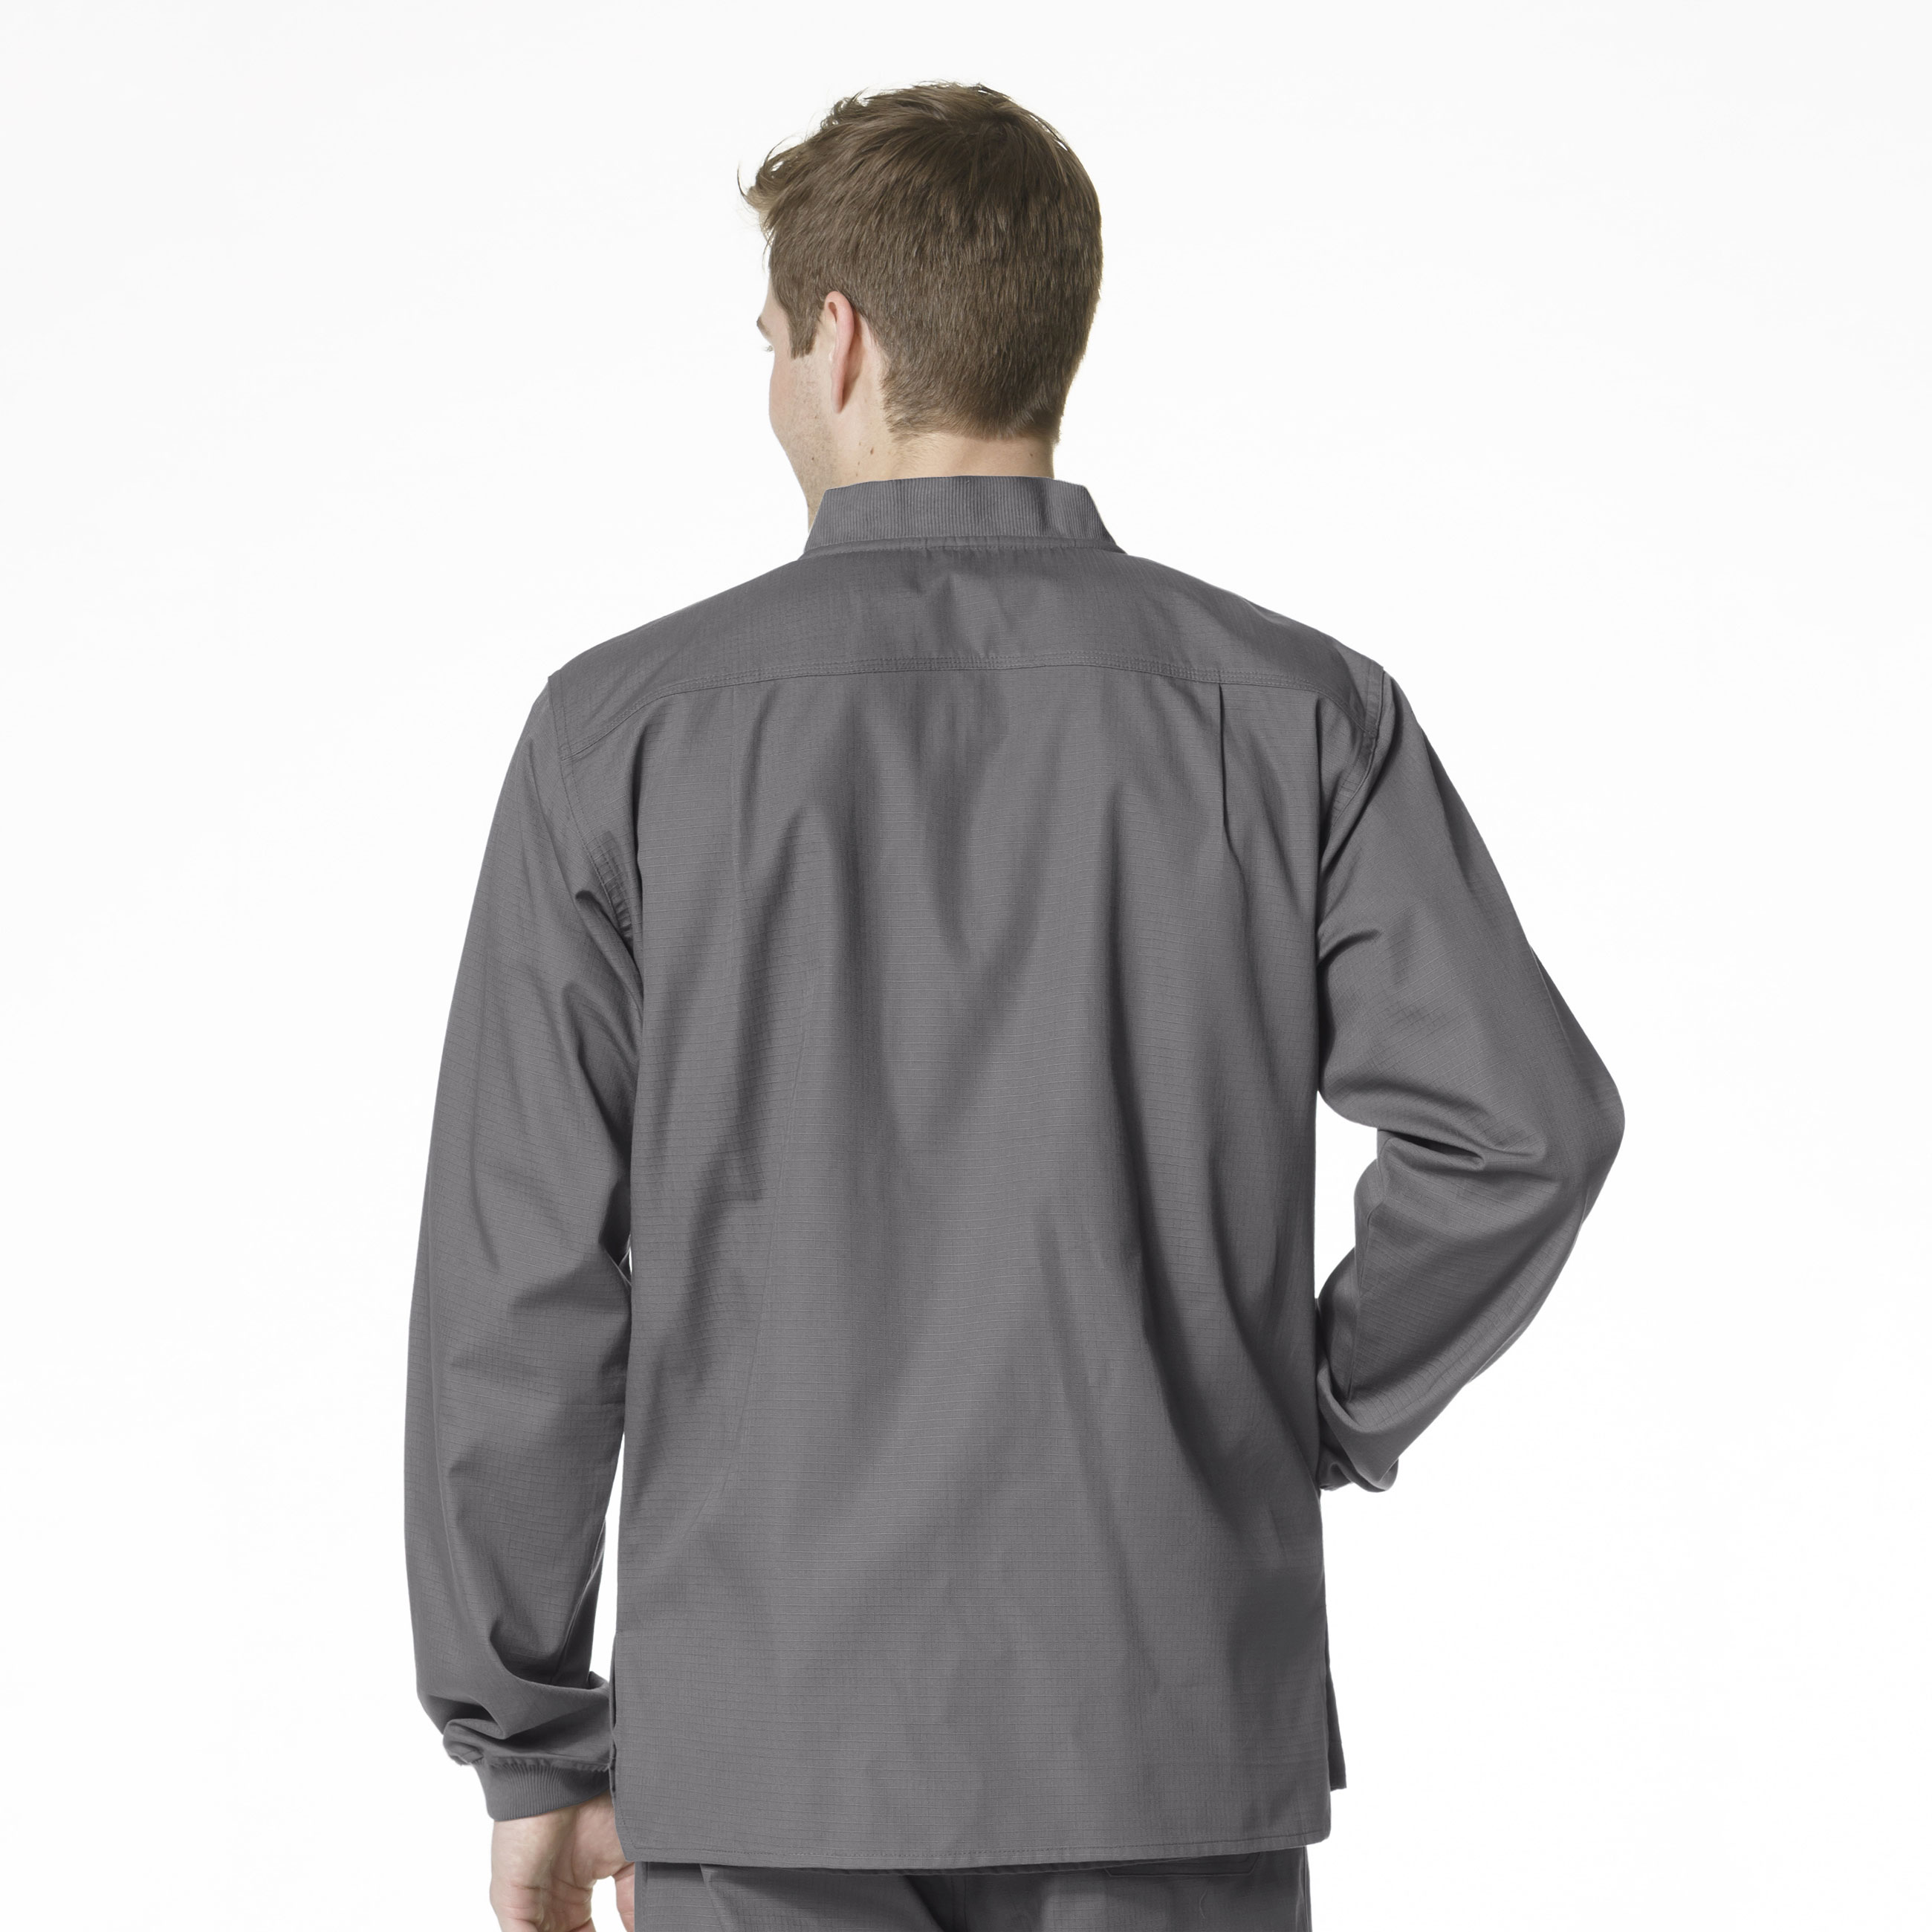 Warmup Jacket, CAR-C84108A